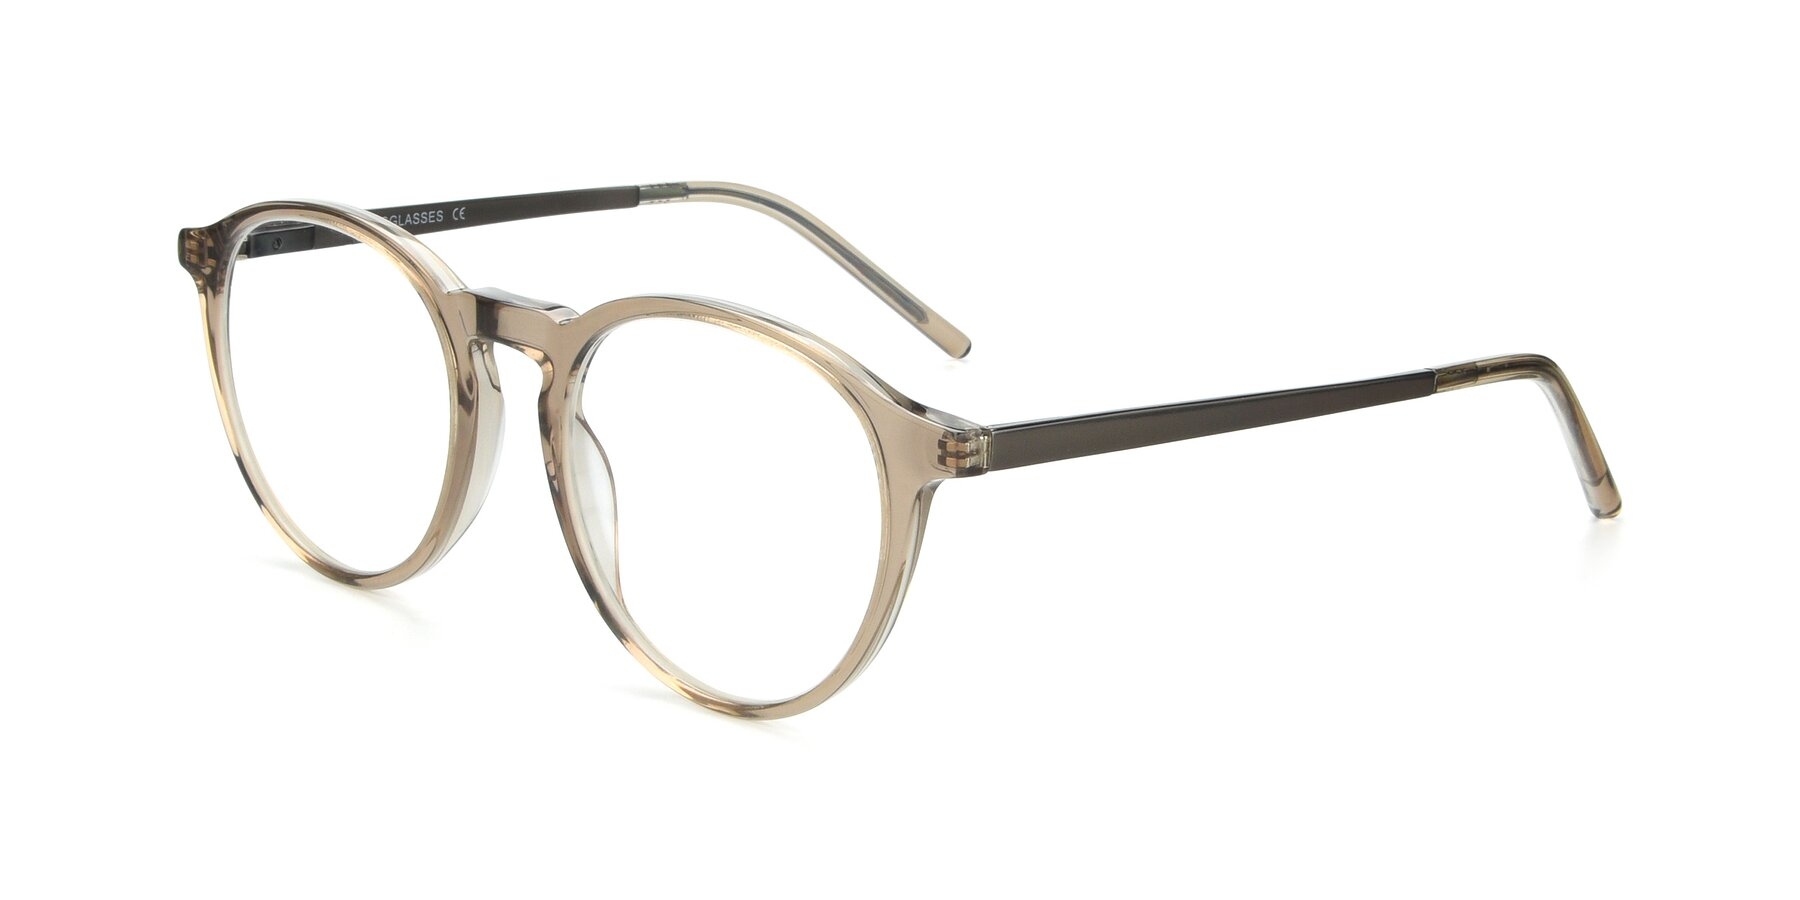 Angle of 17450 in Transparent Brown with Clear Eyeglass Lenses